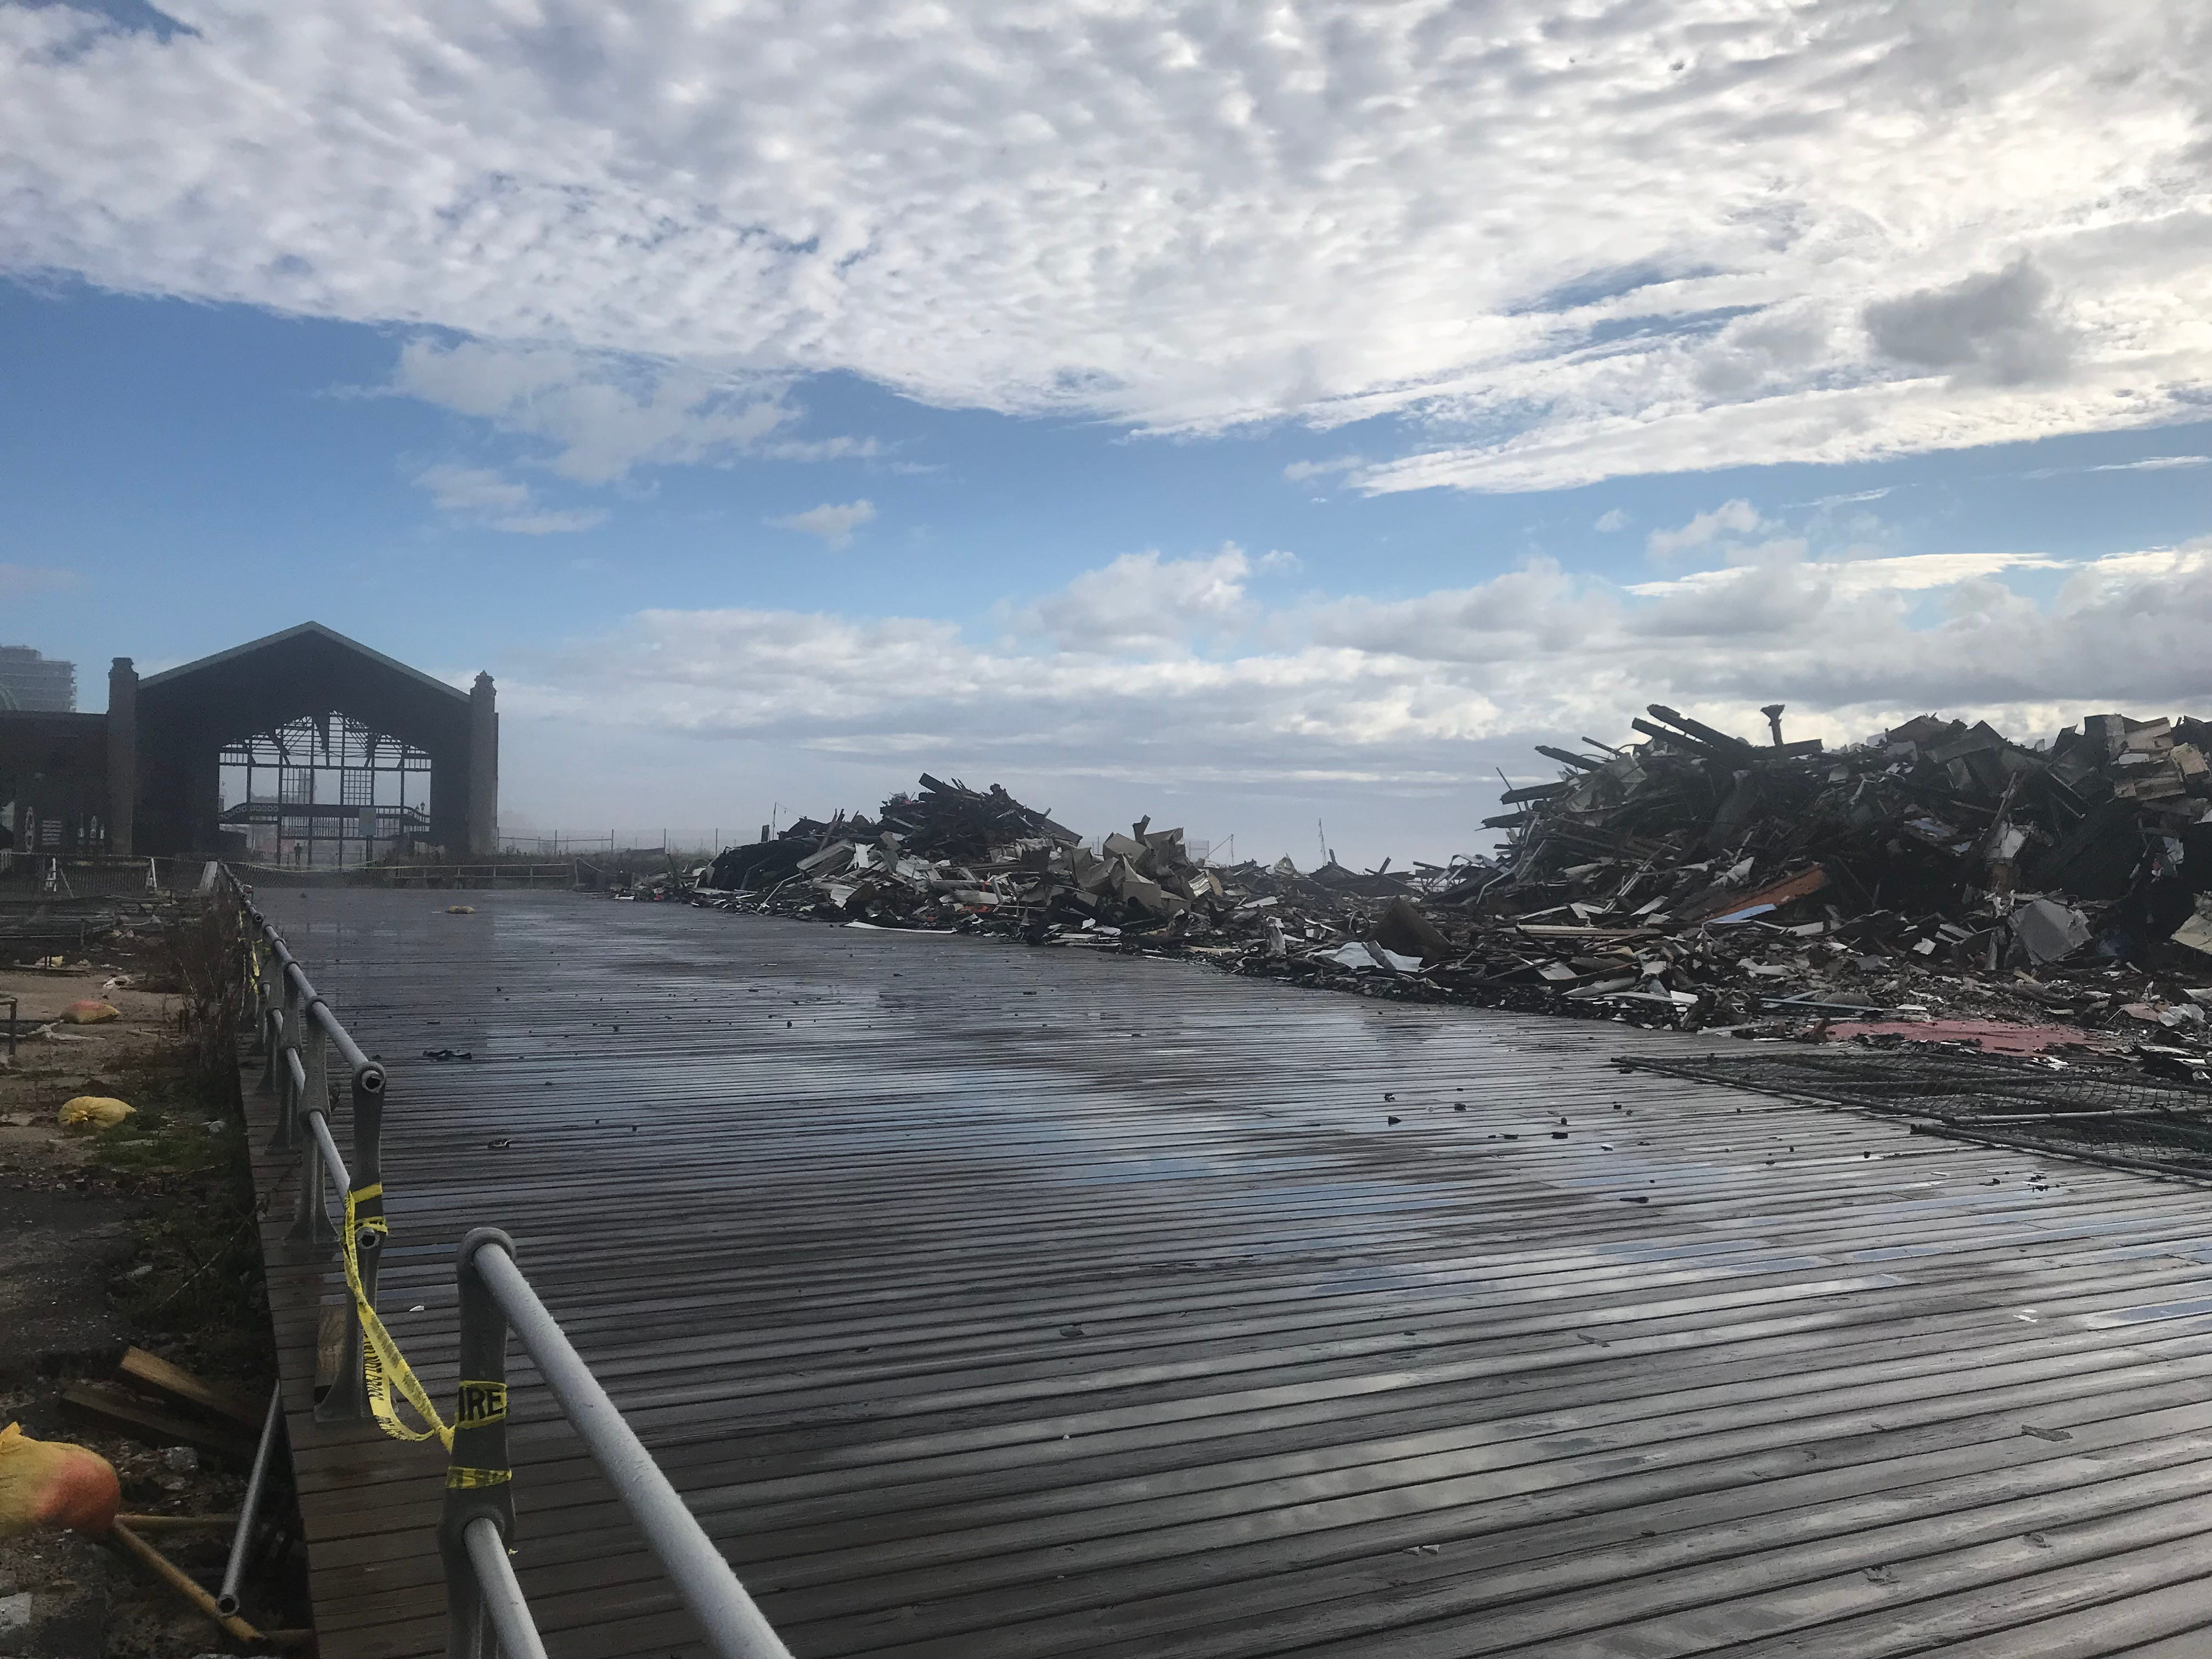 The Casino between Asbury Park and Ocean Grove can be seen in the background of the demolished pavilion destroyed by fire Saturday, April 13, 2019.